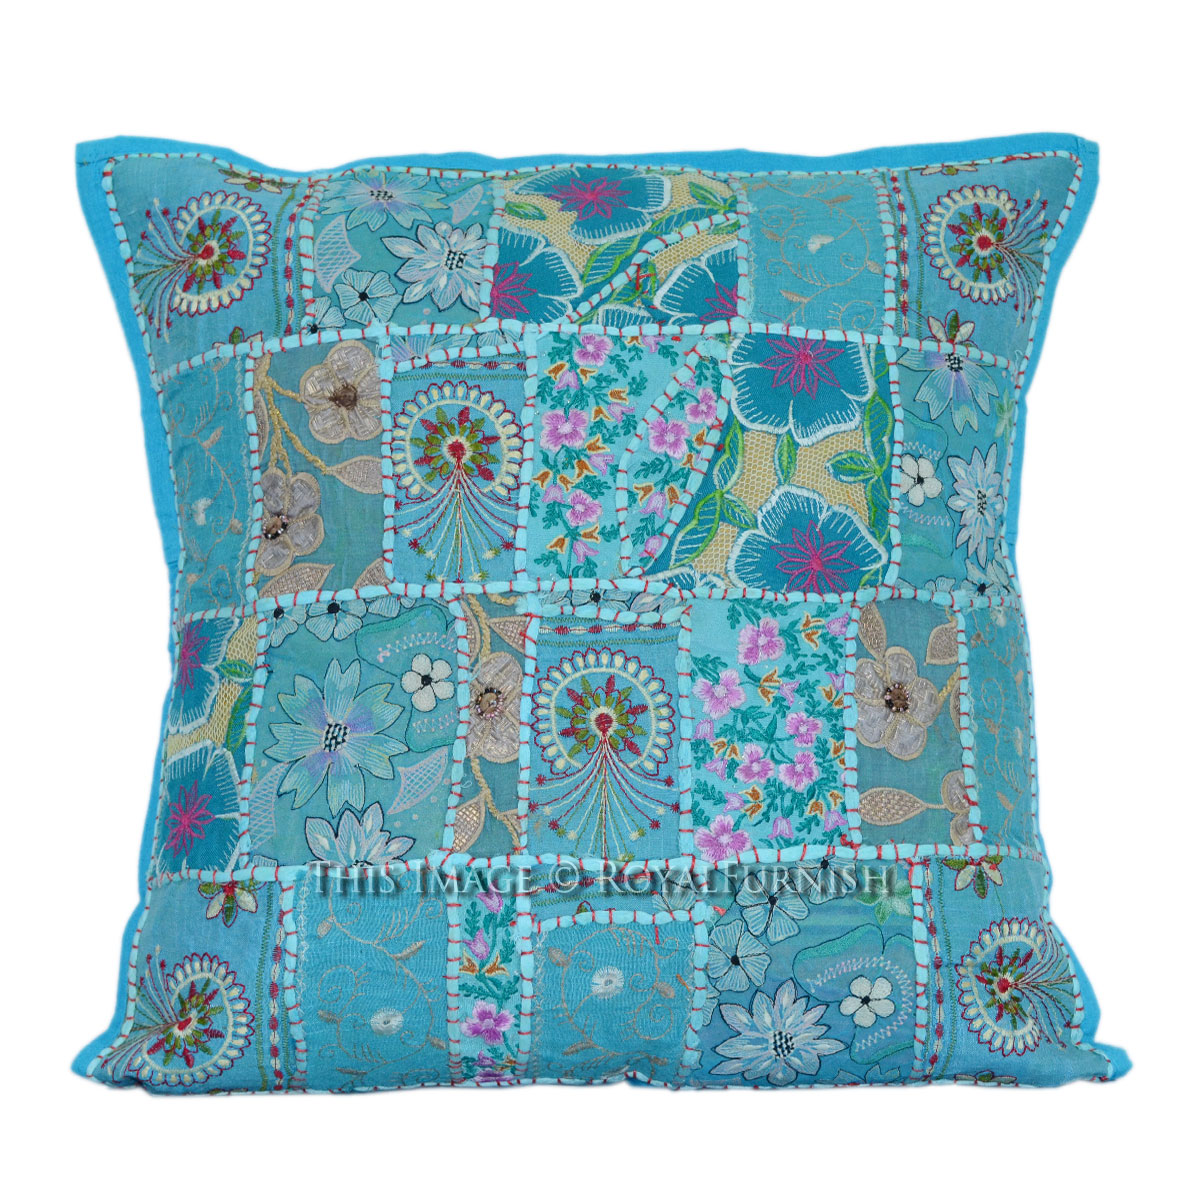 20 Inch Blue Square Box Patchwork Embroidery Pattern Toss Pillow Cover - RoyalFurnish.com